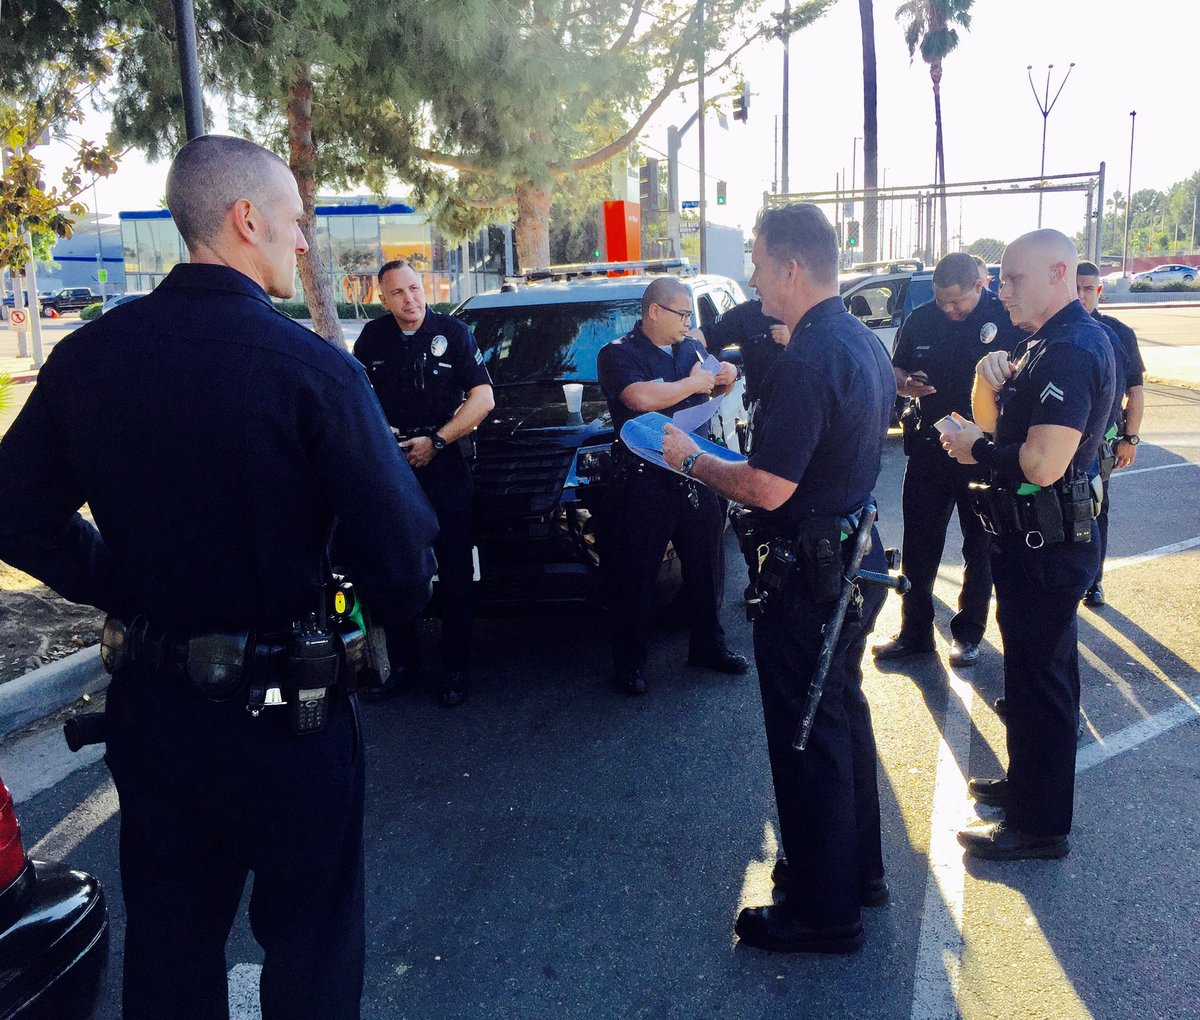 Taking our Roll Calls to the St. @lapdVanNuysDiv Van Nuys &amp; Busway #visibility #community #itswhatwedo @LAPDVanNuysCPAB @911LAPD @LAPDHQ<br>http://pic.twitter.com/KIUfqv1i96